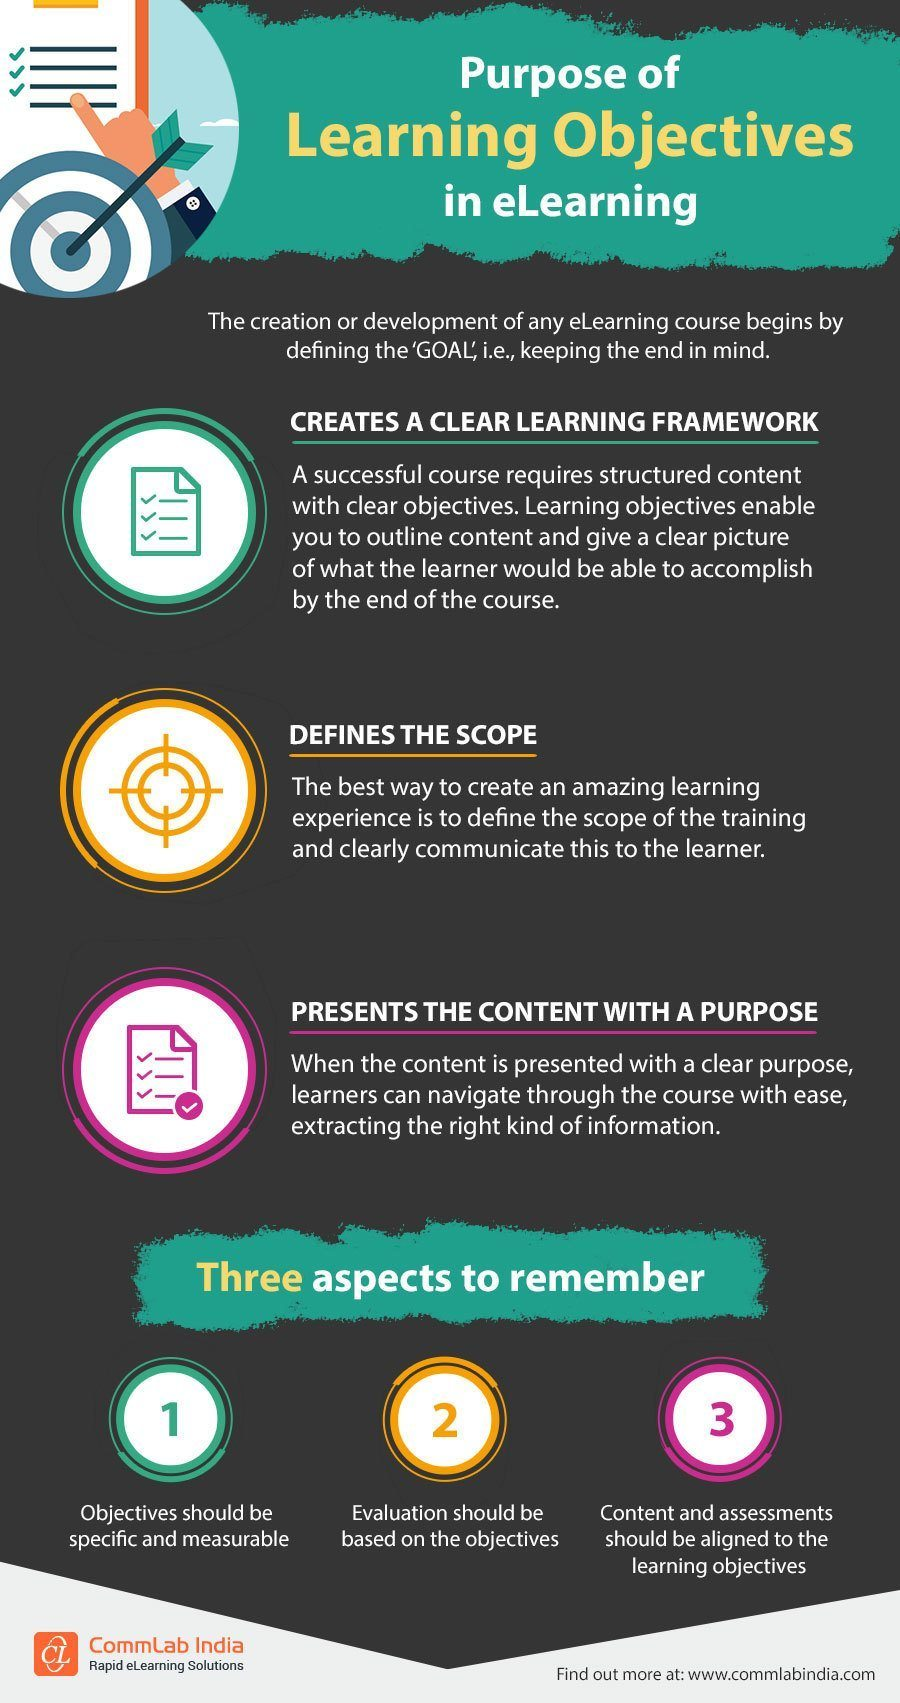 Purpose of Learning Objectives in eLearning